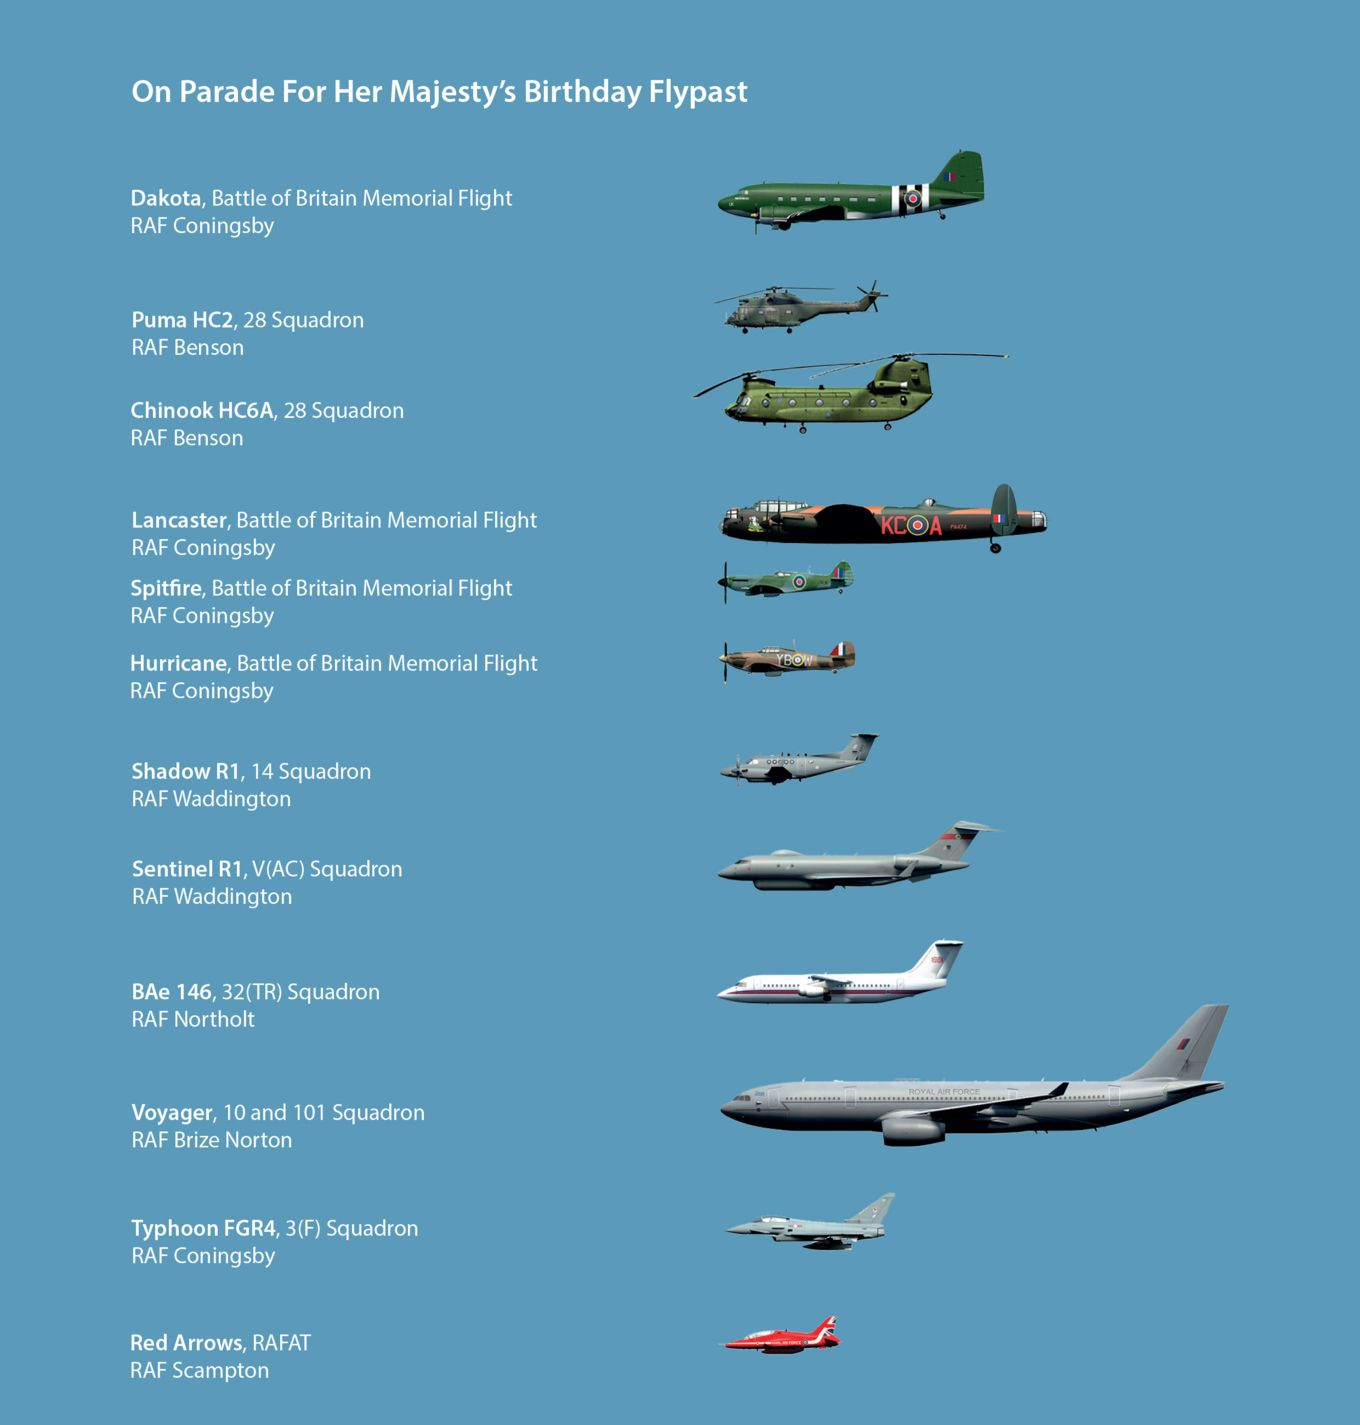 The Royal Air Force in 2019